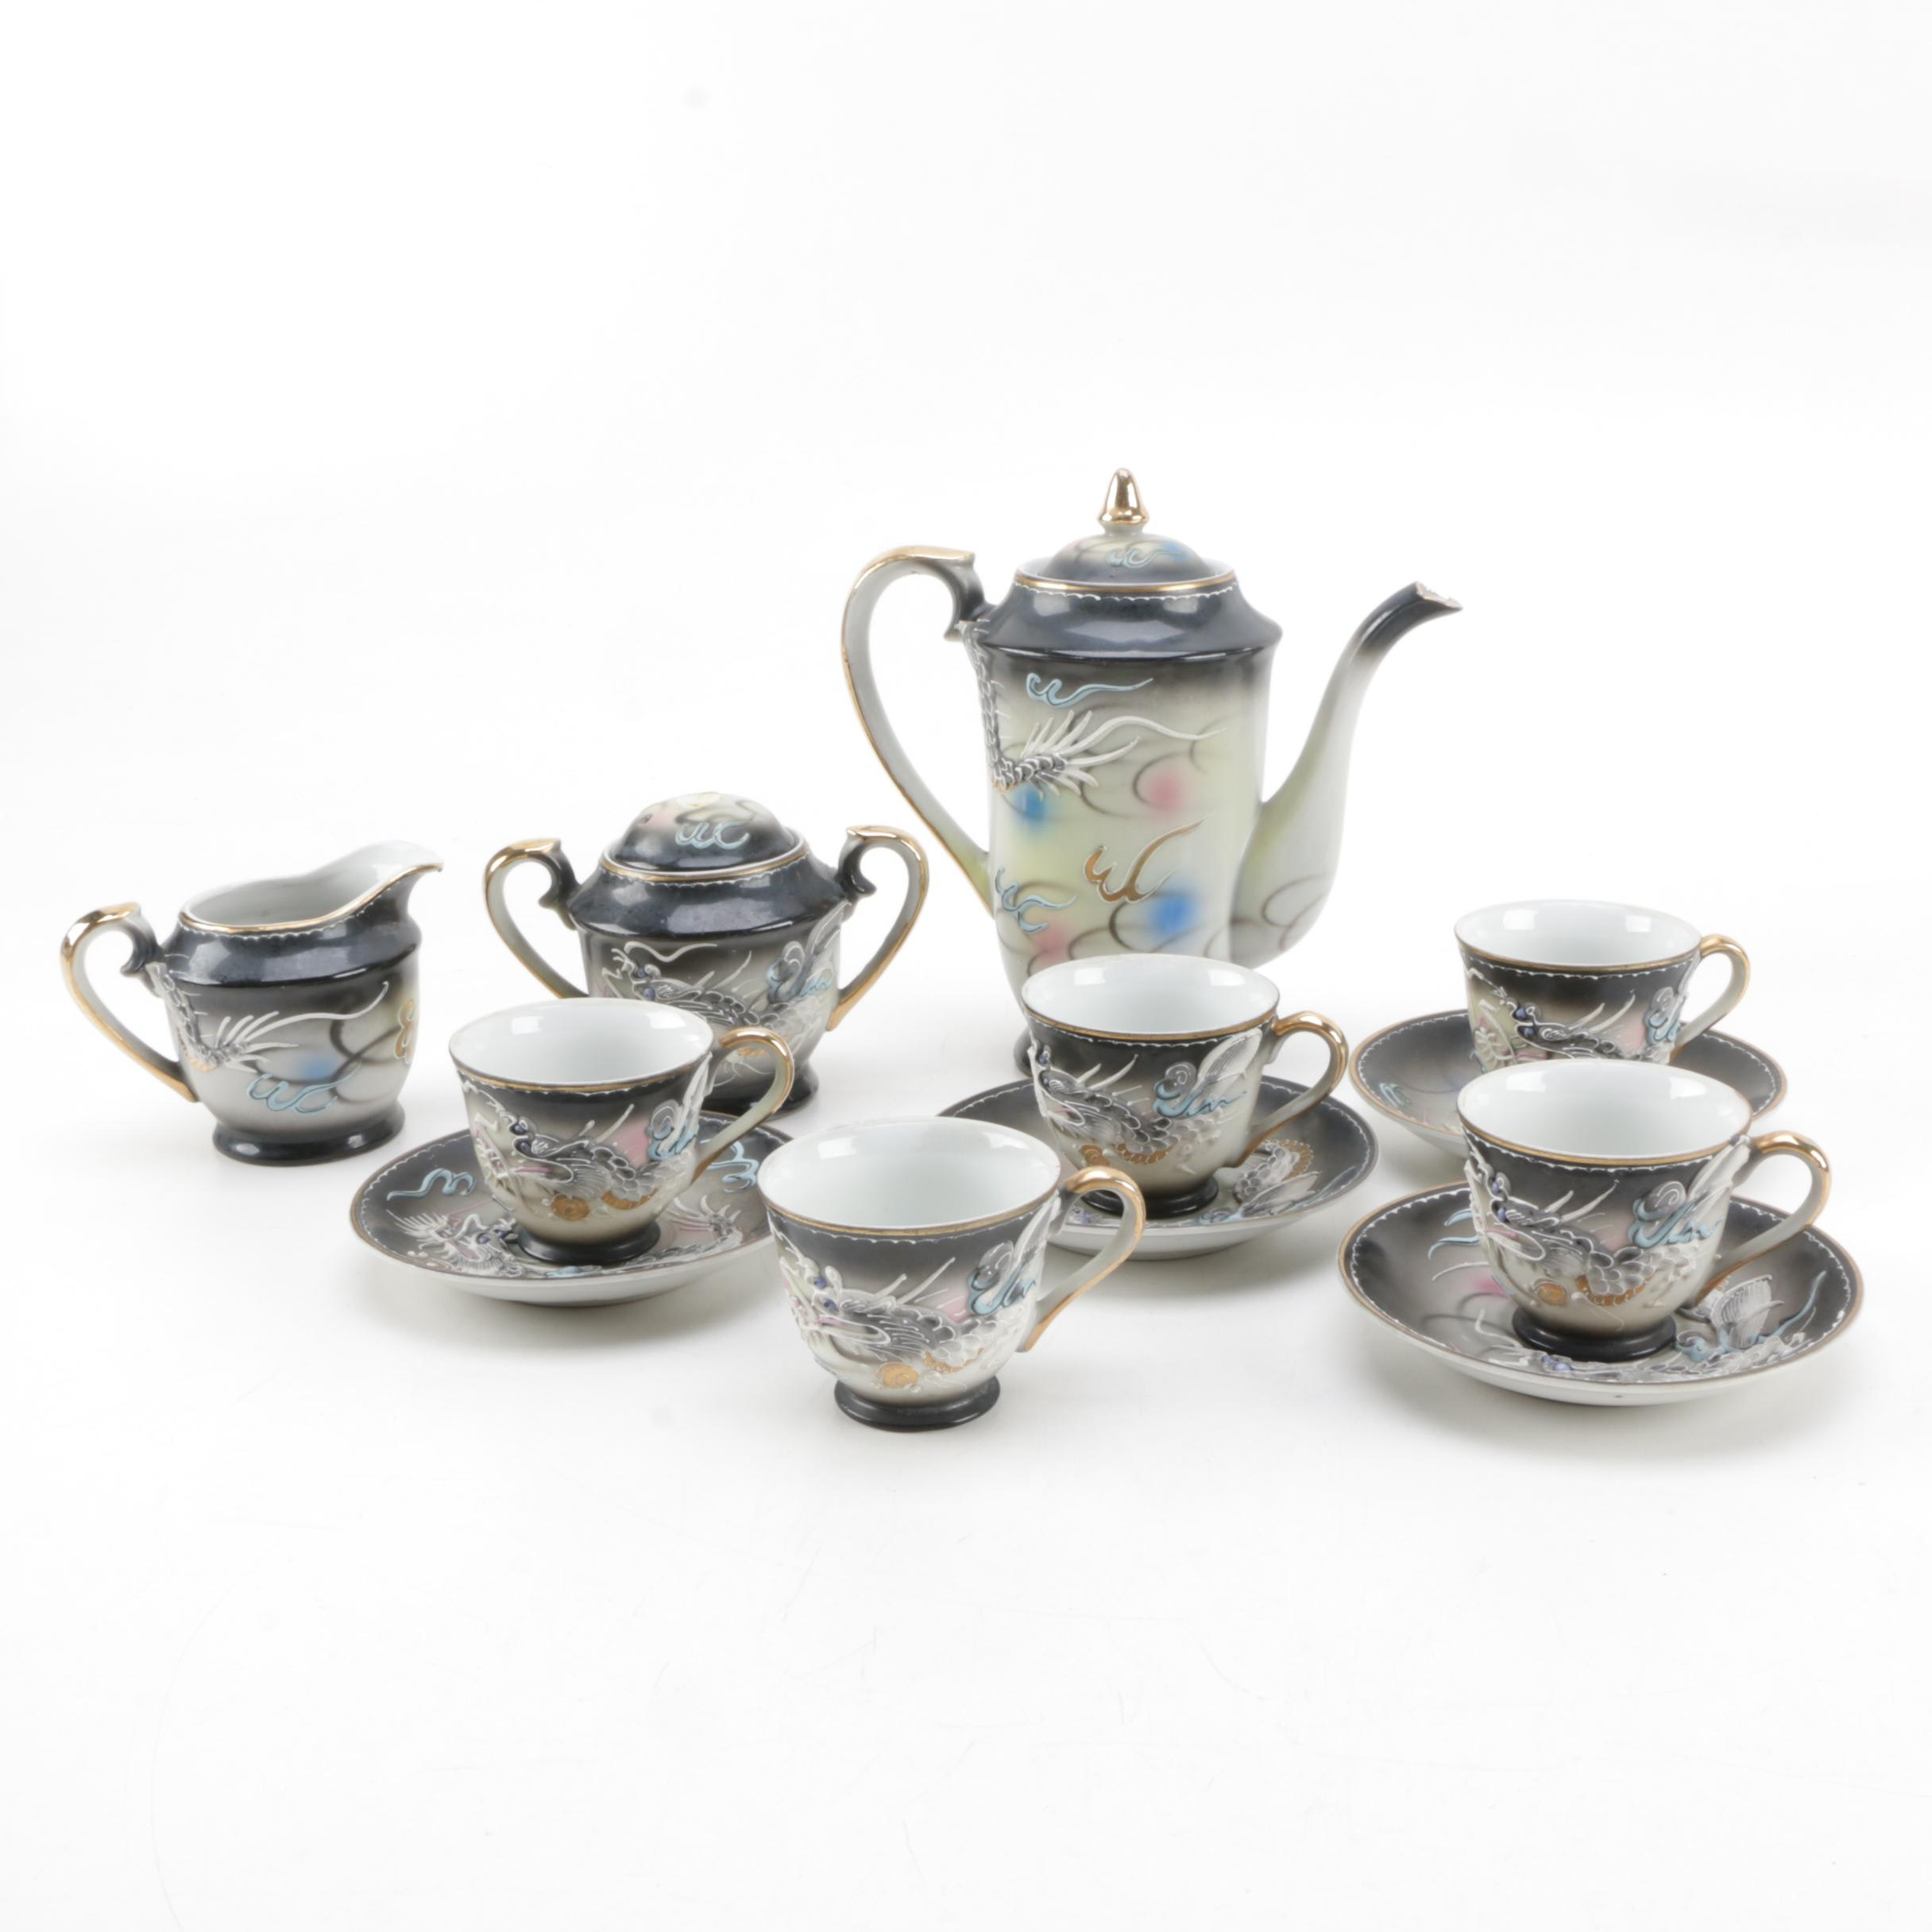 Japanese Dragon Motif Porcelain Tea Service